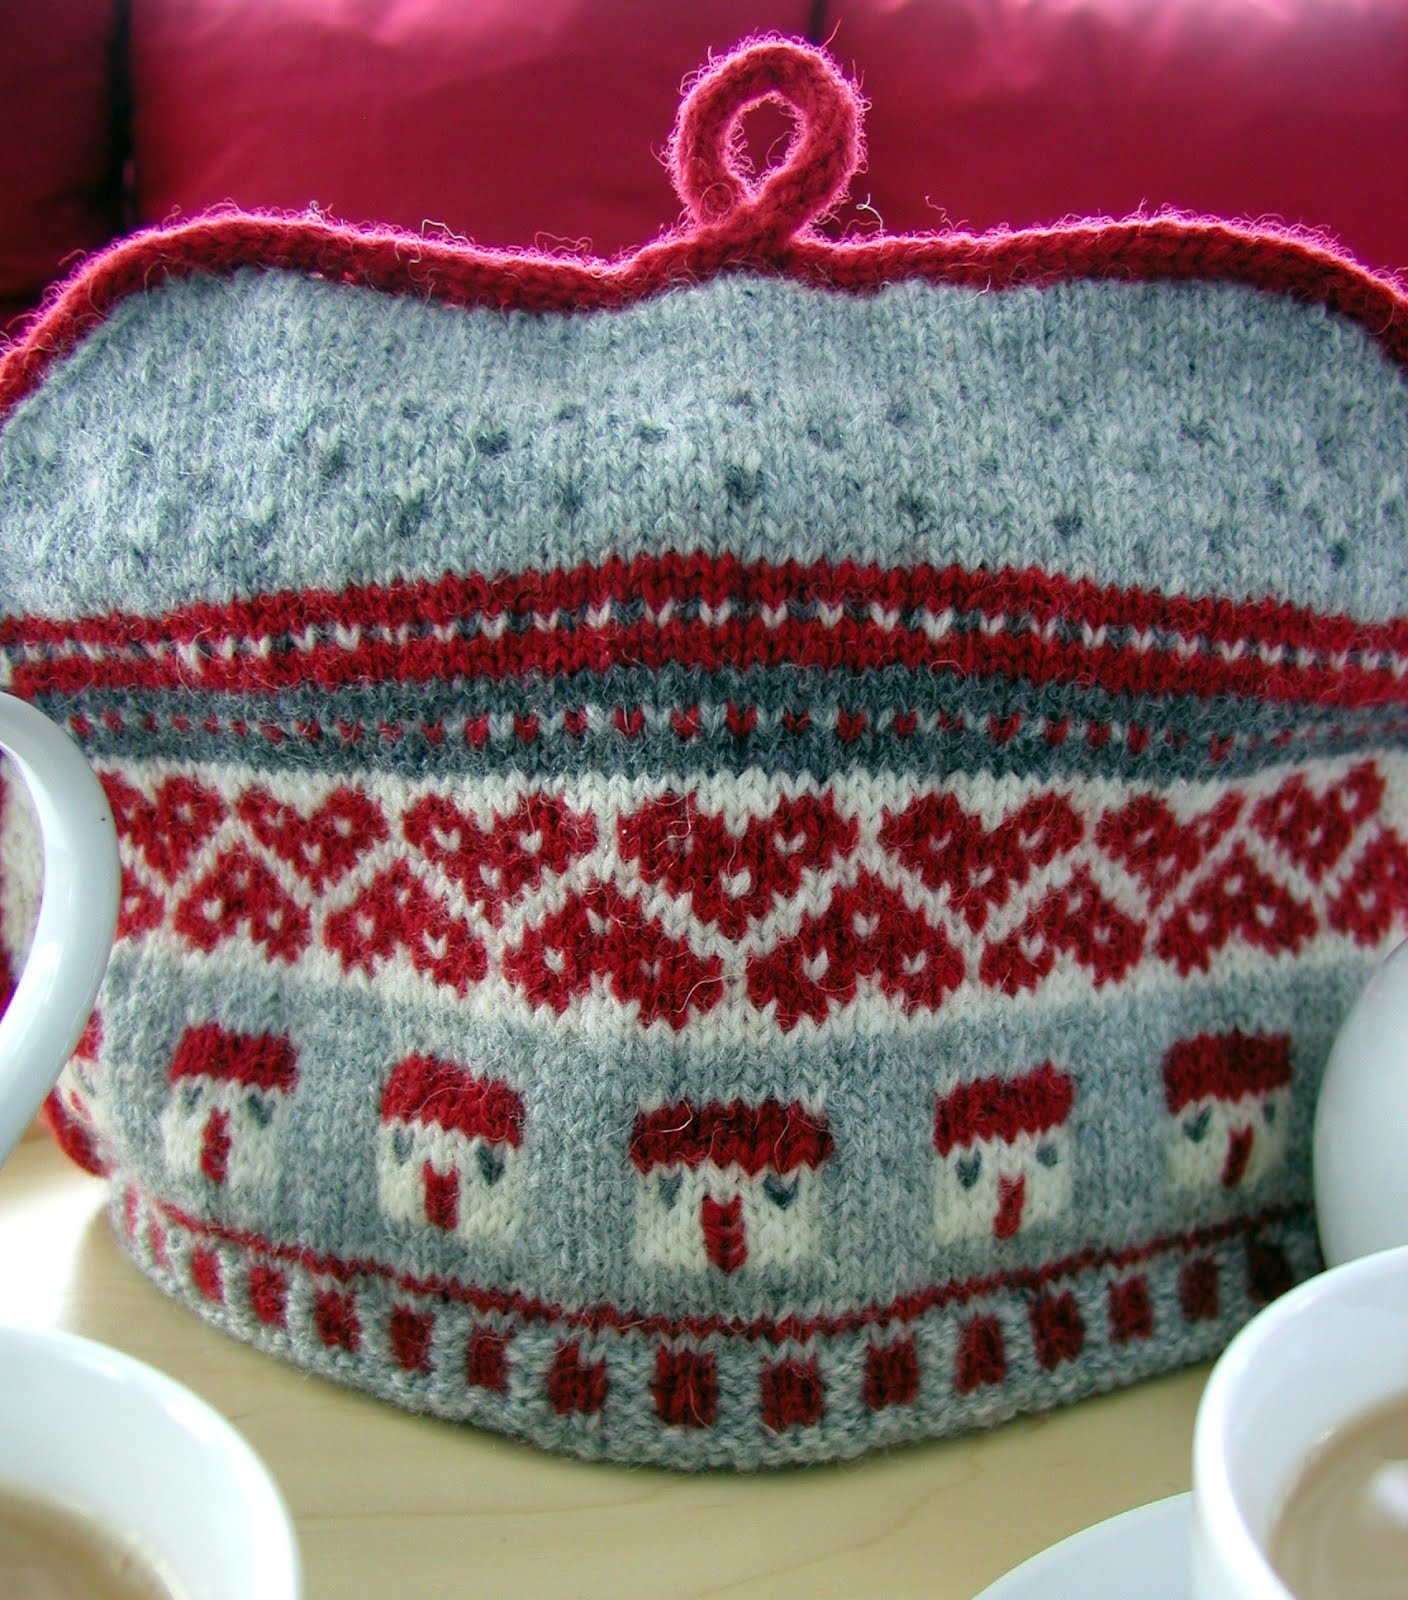 Hand Knitted Things: Tea for Two?